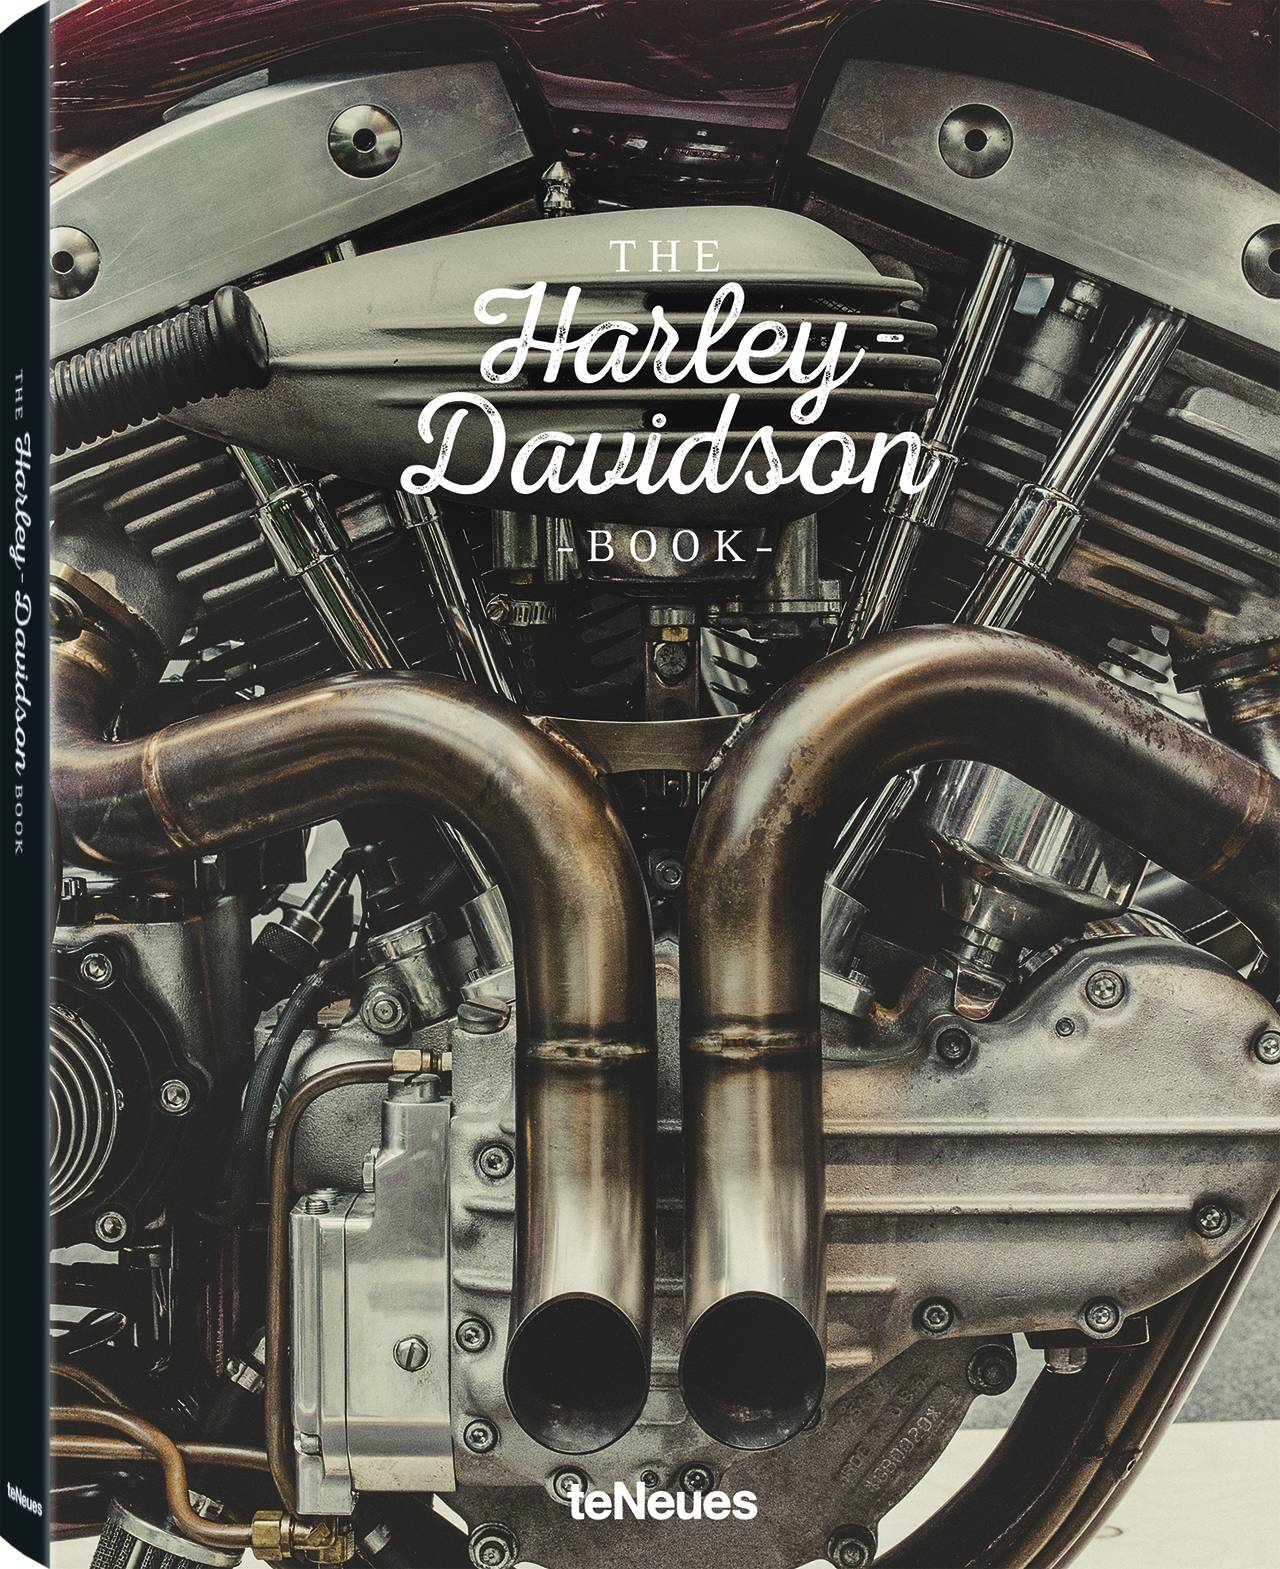 © The Harley-Davidson Book, published by teNeues, www.teneues.com. Harley-Davidson Shovelhead-engine, Photo © Laurent Nivalle